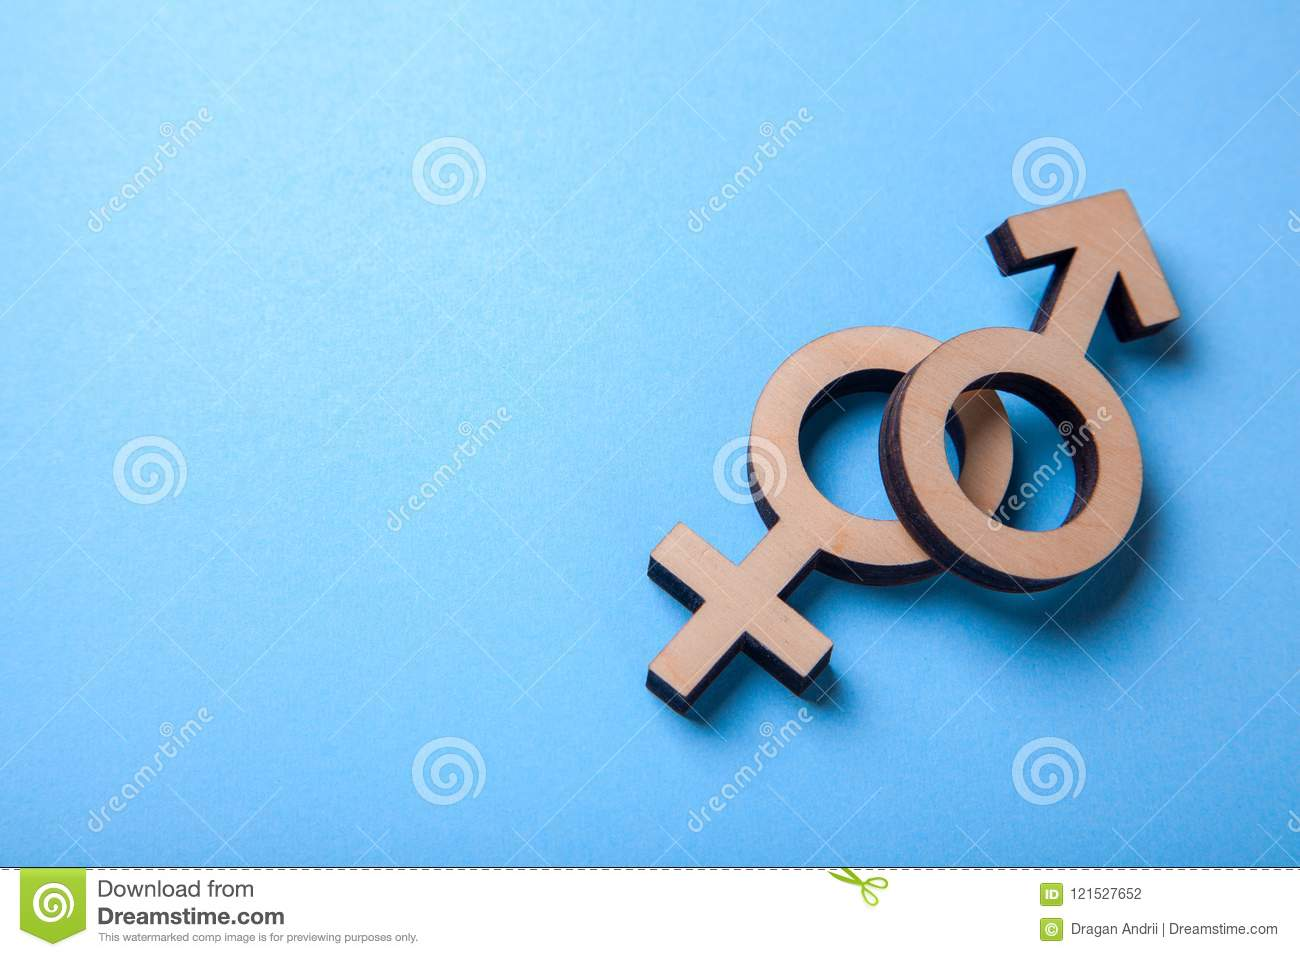 Gender Symbols Of Man And Woman Of Tree On Blue Copy Space For Text